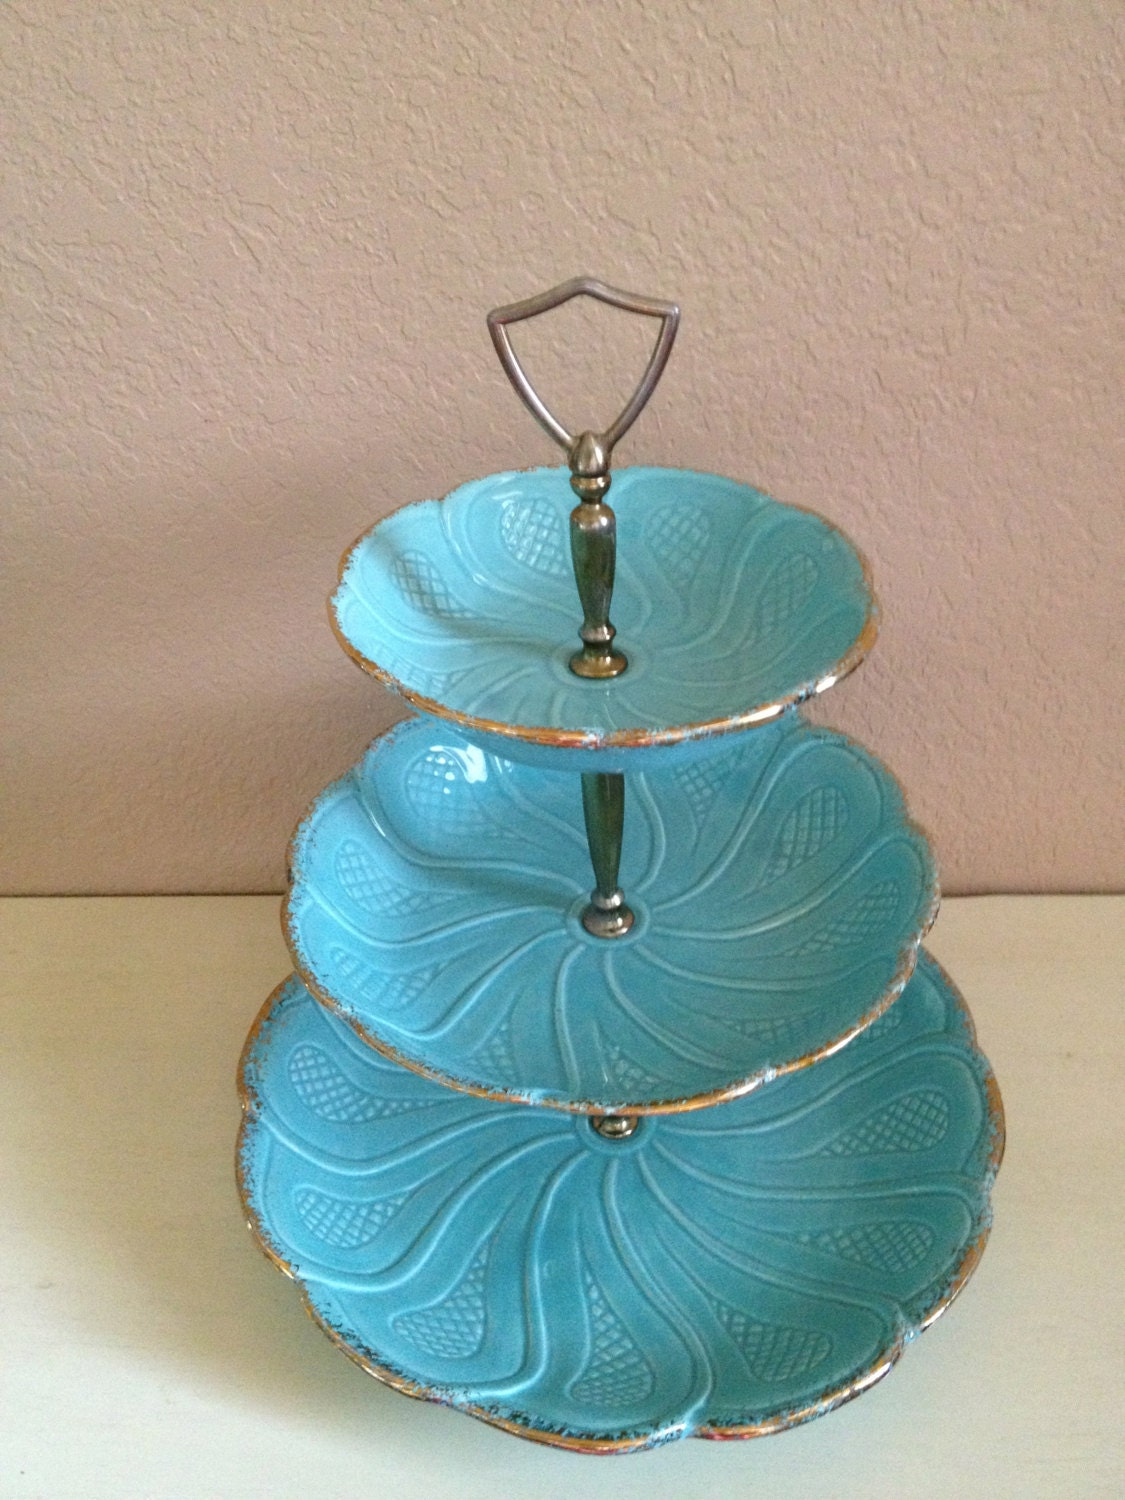 Vintage California Pottery Dessert Stand Turquoise Three Tier